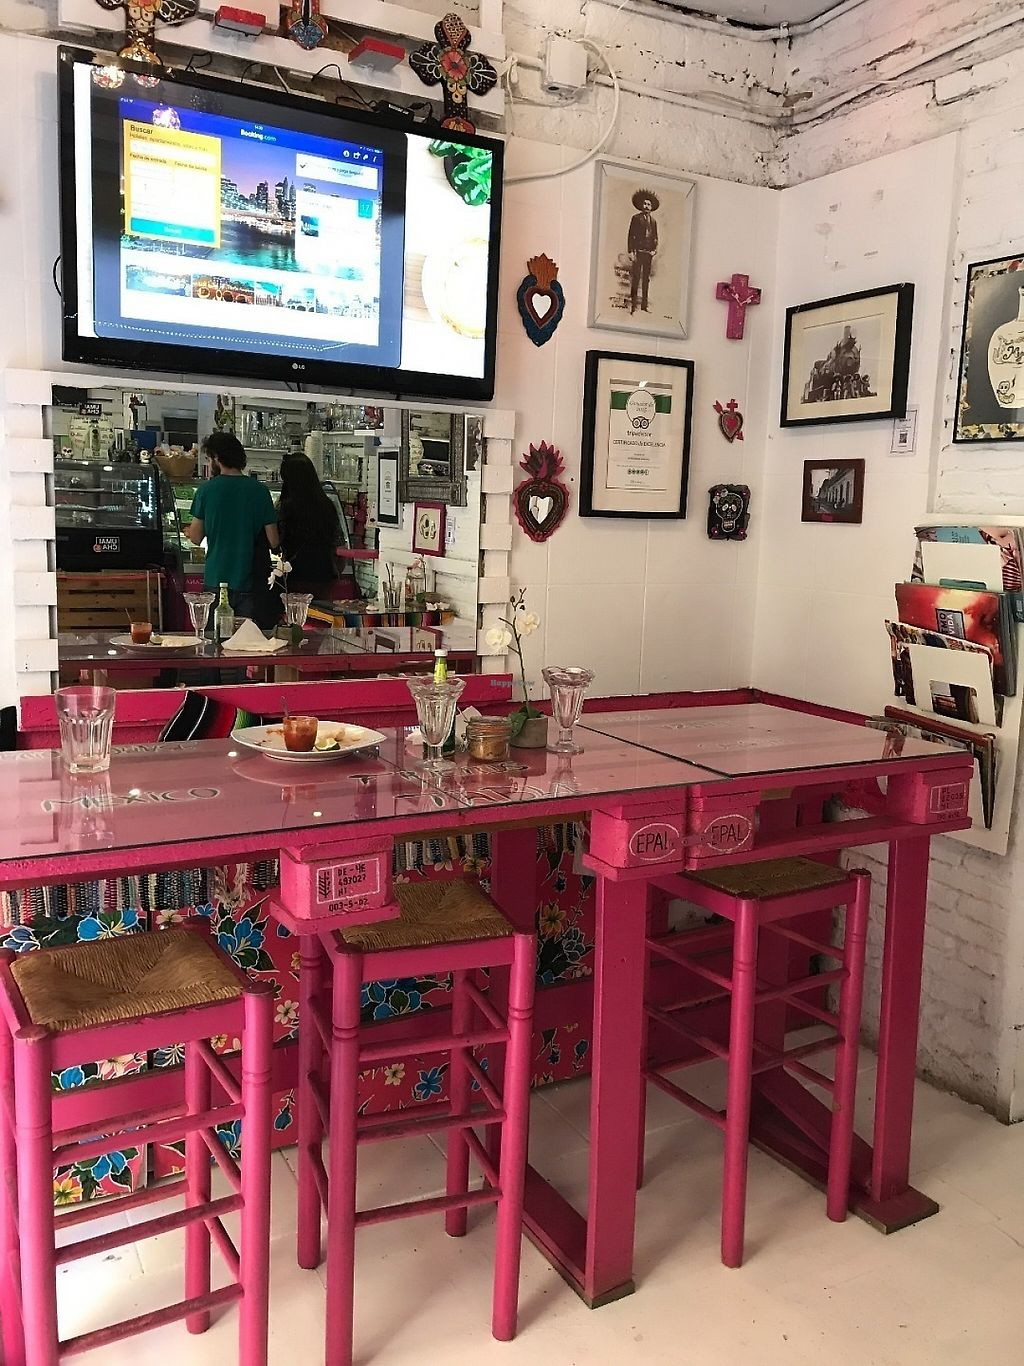 """Photo of La Heladeria Mexicana  by <a href=""""/members/profile/Kevtool"""">Kevtool</a> <br/>Inside <br/> May 12, 2017  - <a href='/contact/abuse/image/50086/258191'>Report</a>"""